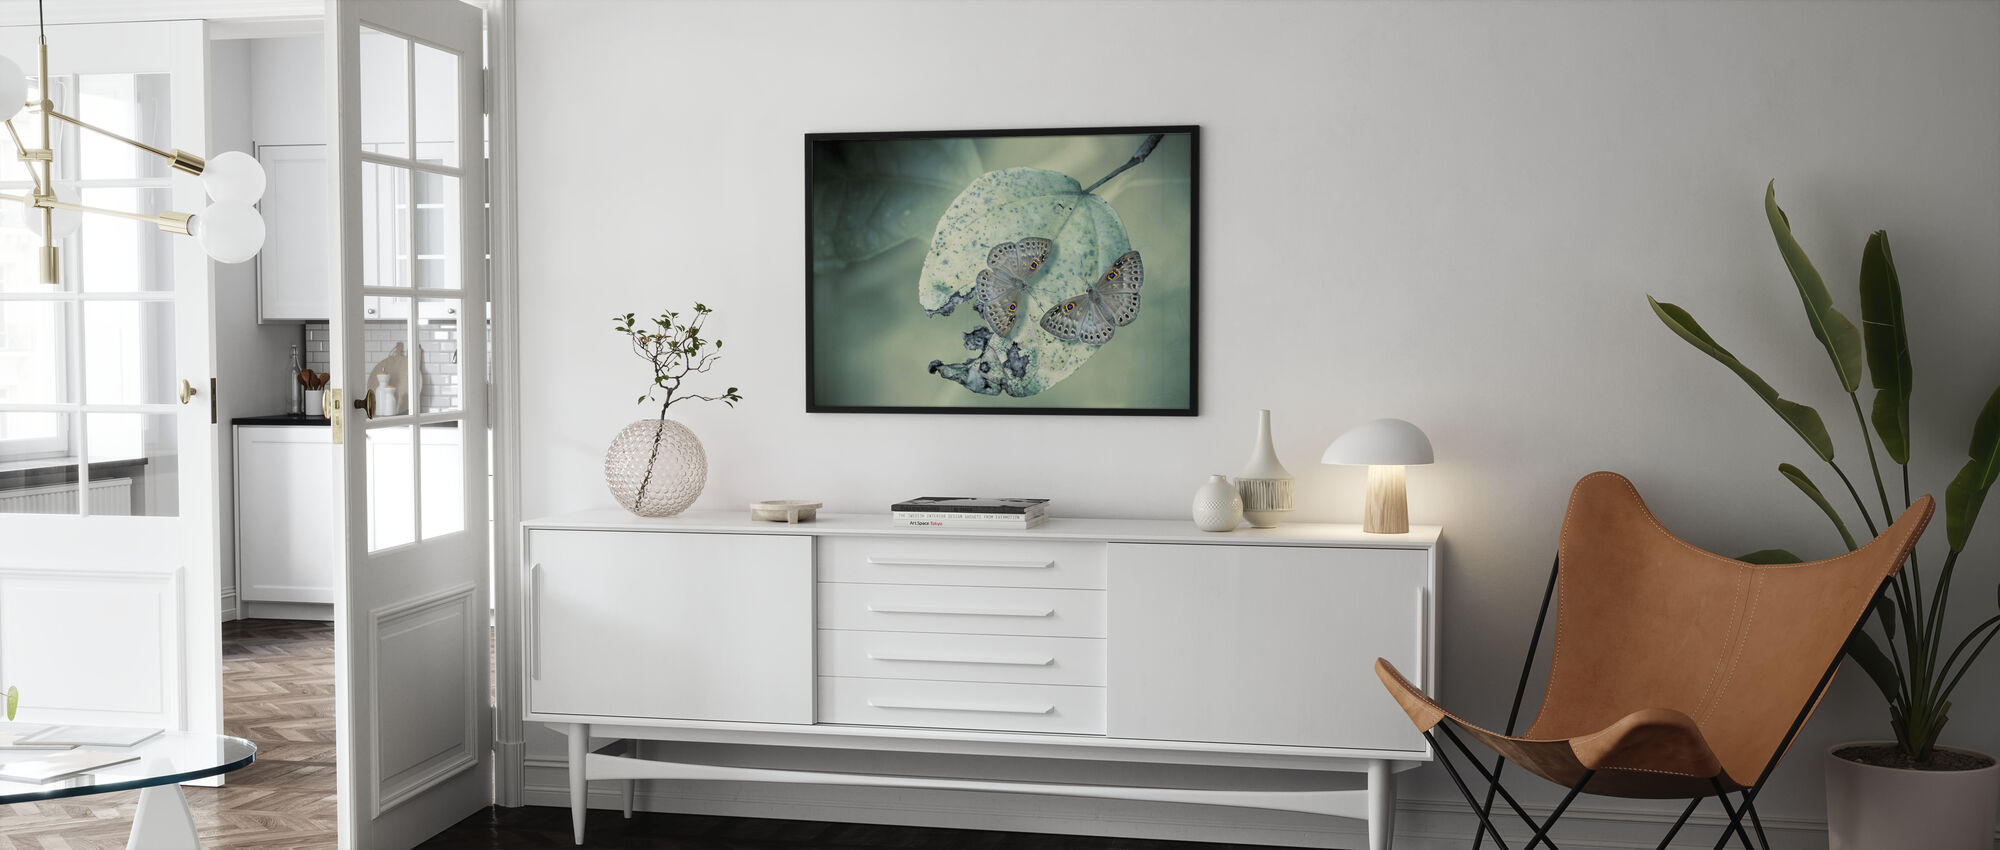 Duet - Poster - Living Room